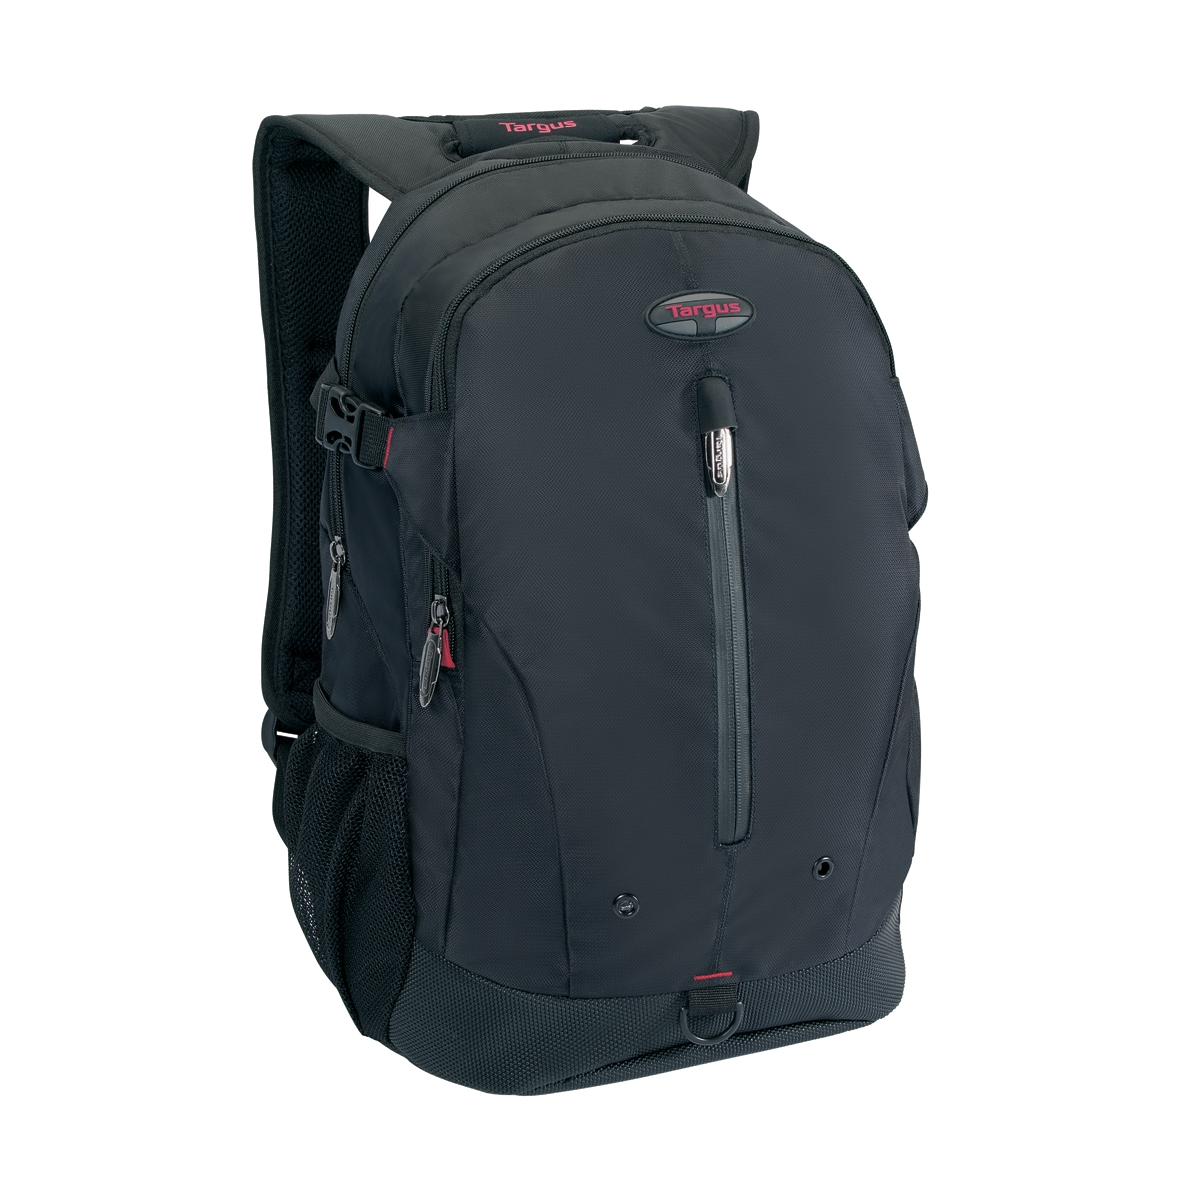 "Terra™ 15-16  ""   Backpack - Black"